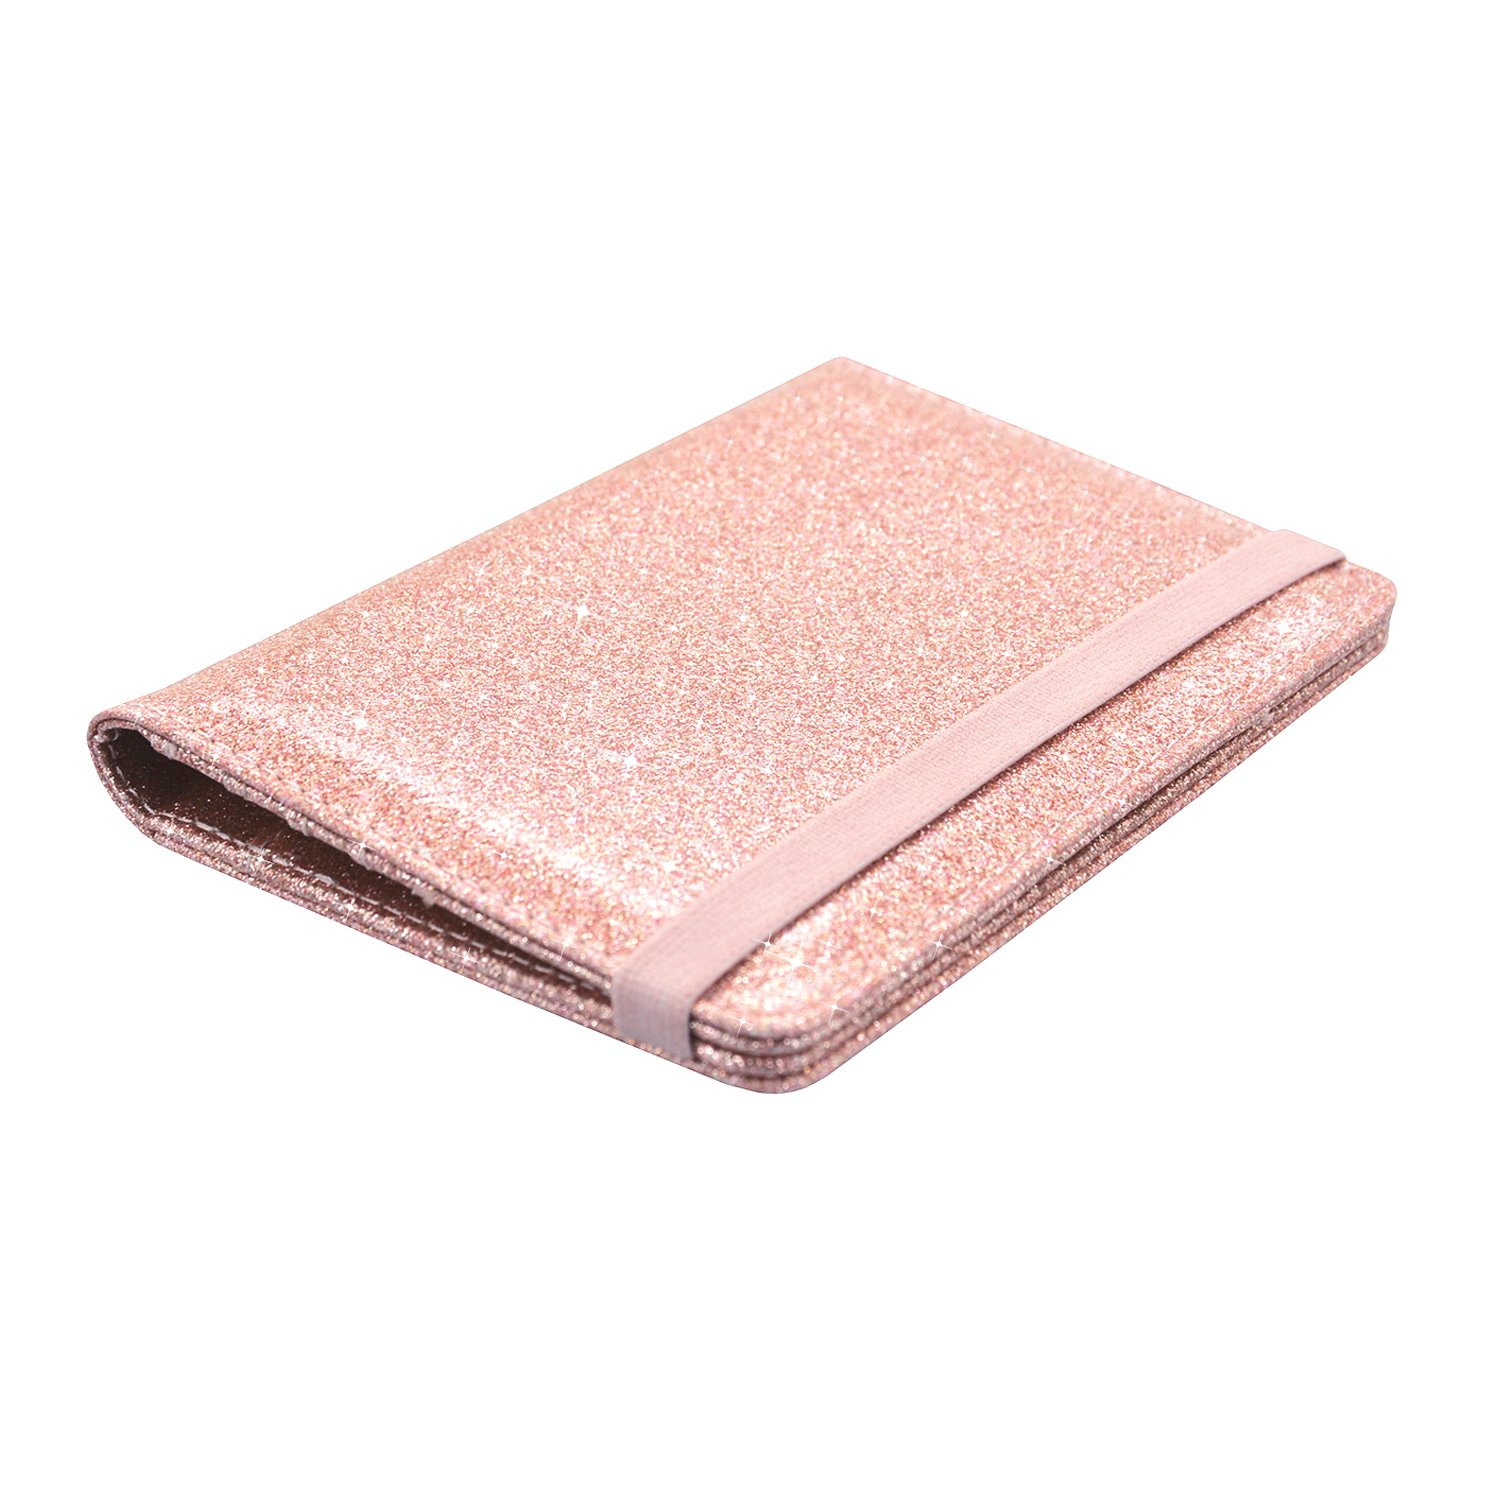 Passport Holder Cover, ACdream Travel Leather RFID Blocking Case Wallet for Passport with Elastic Band Closure, Rose Gold Glitter by ACdream (Image #8)